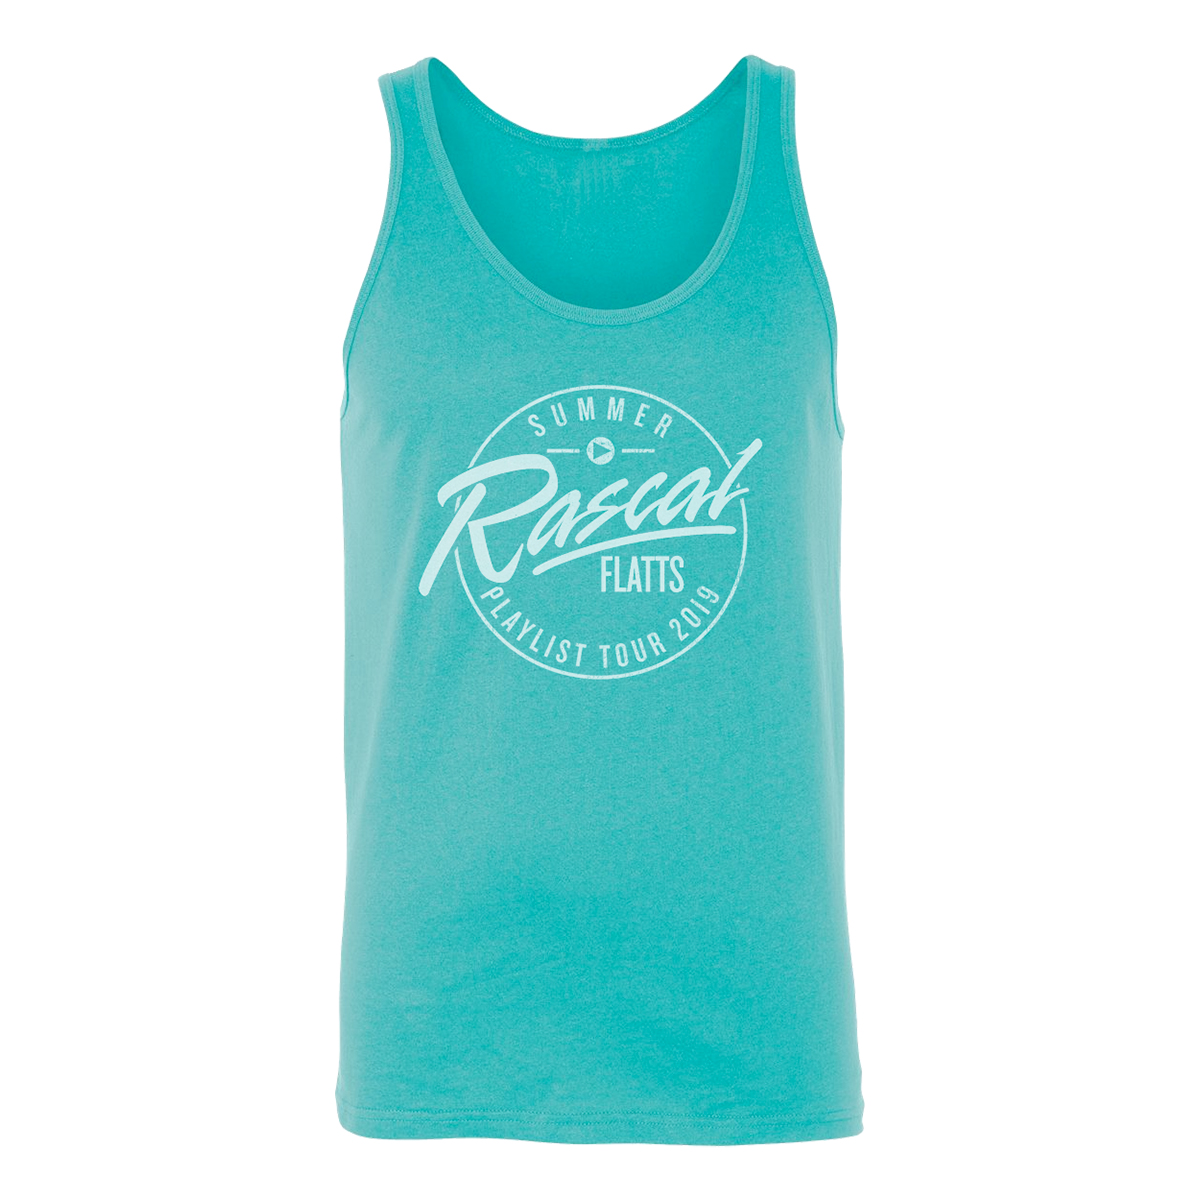 Summer Playlist Tour Teal Tank Top